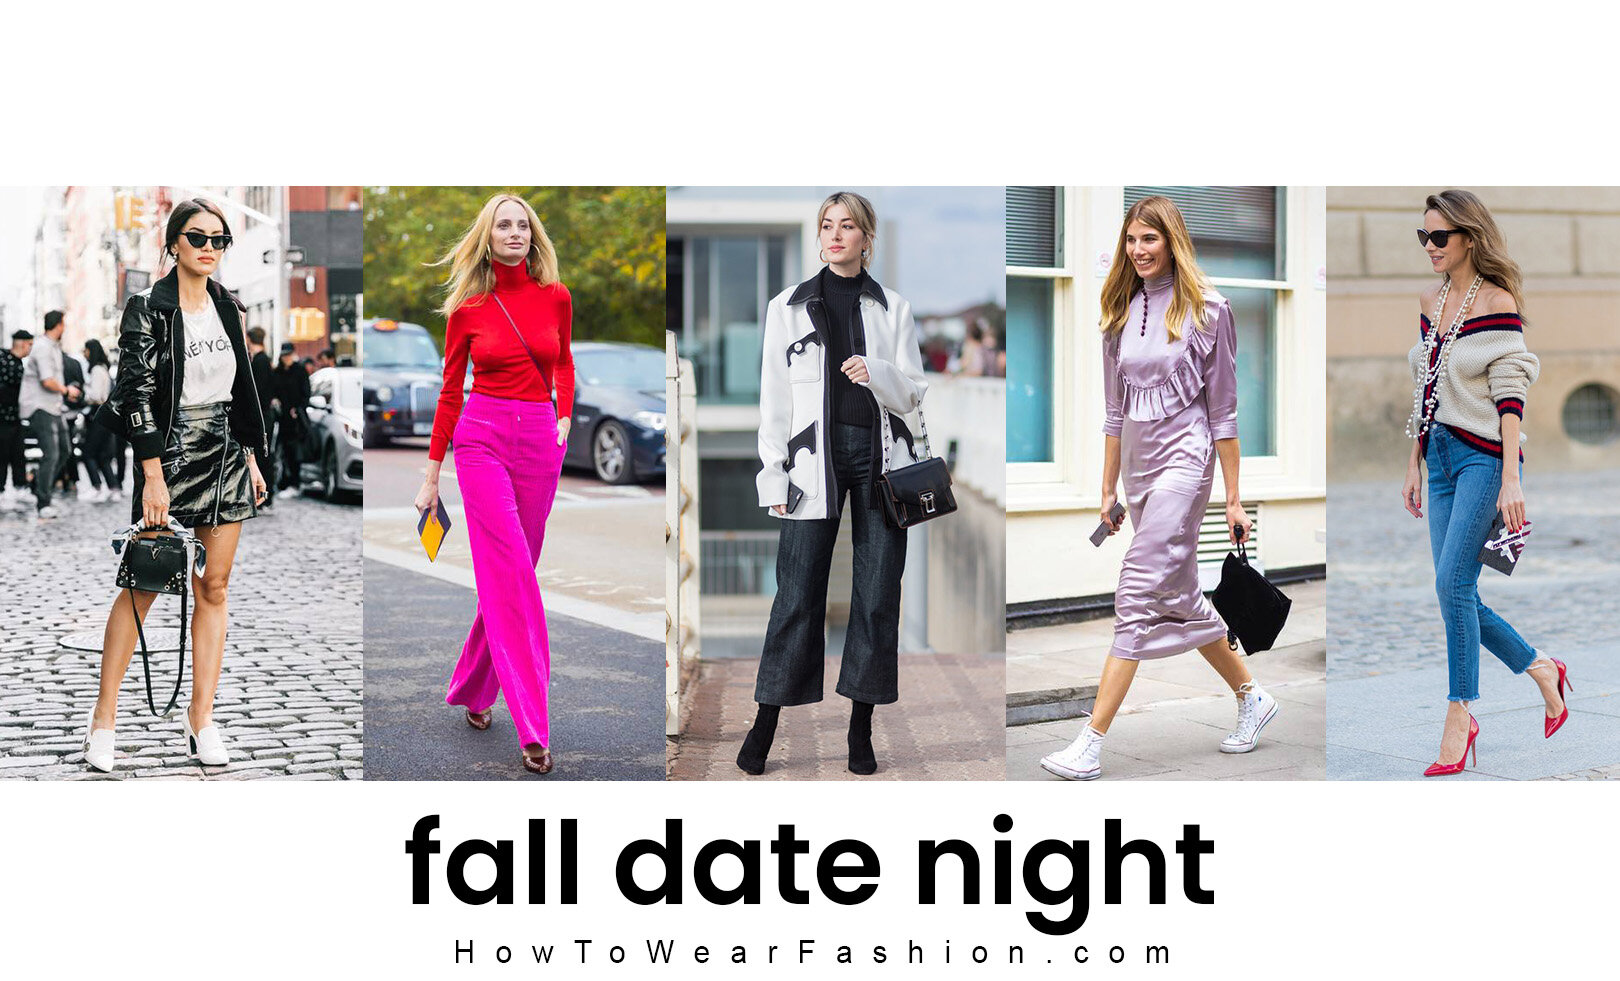 What To Wear For Date Night In Fall Howtowear Fashion